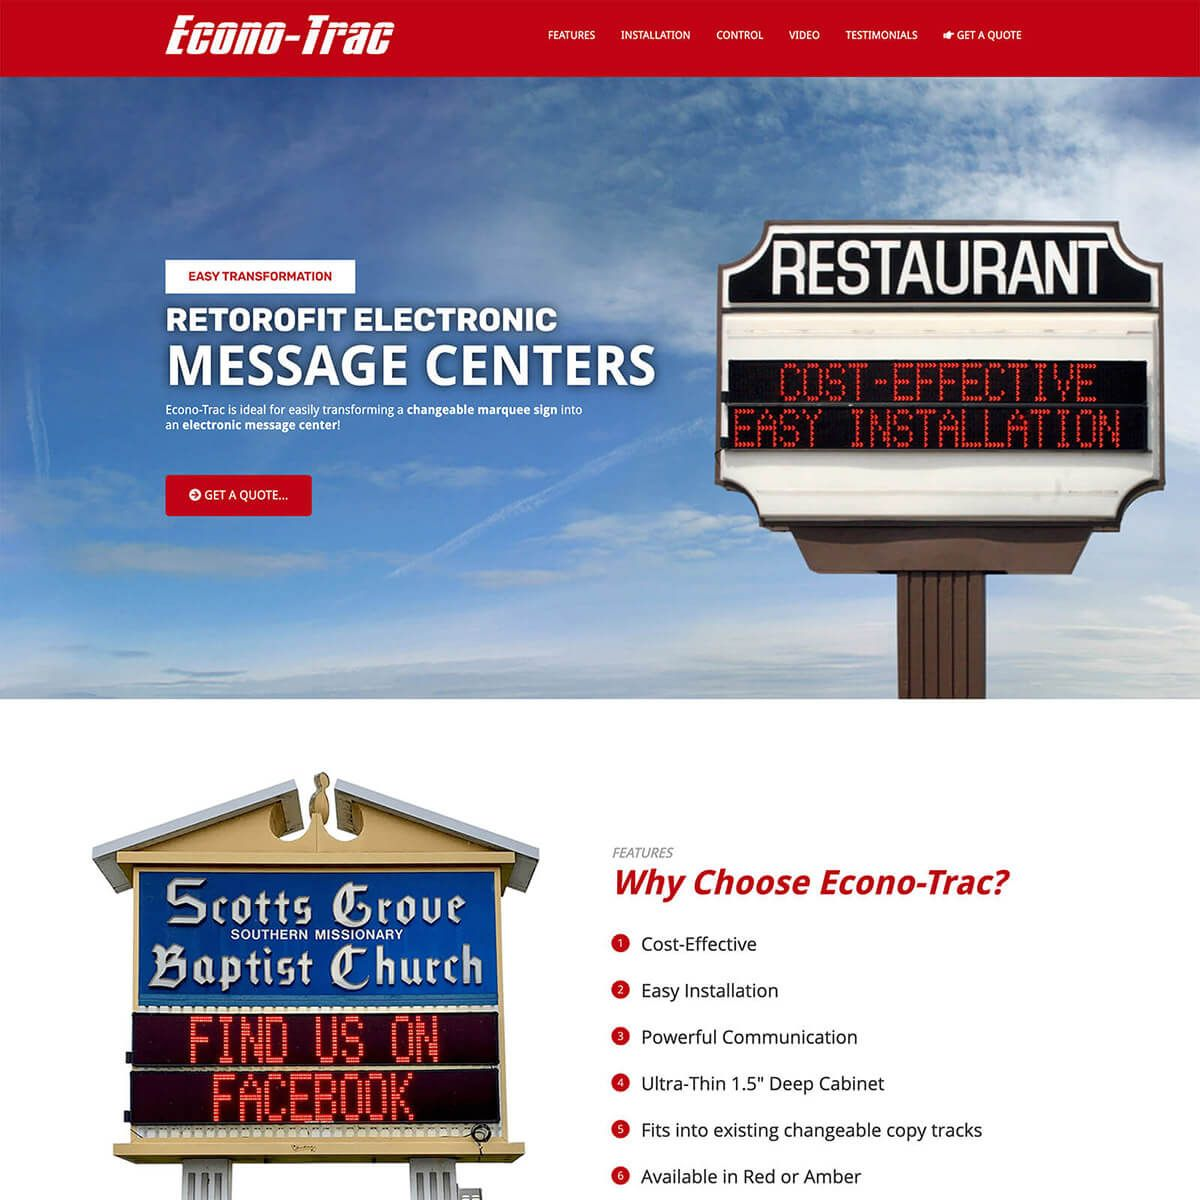 Econo-Trac website by EyeSite Creations